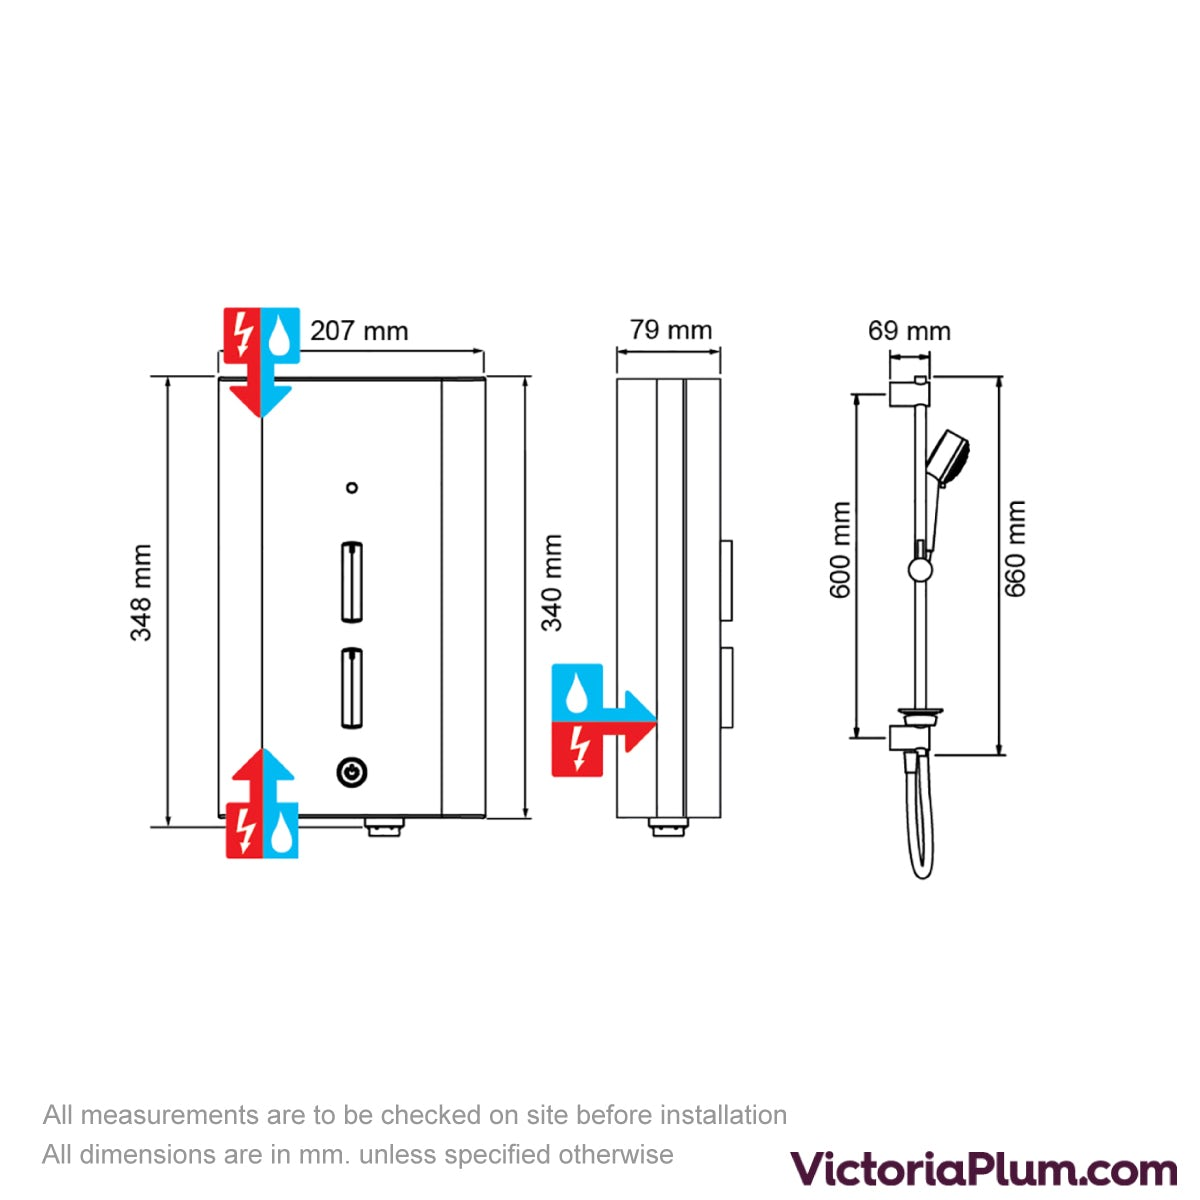 Dimensions for Mira Escape 9.0kw electric shower chrome